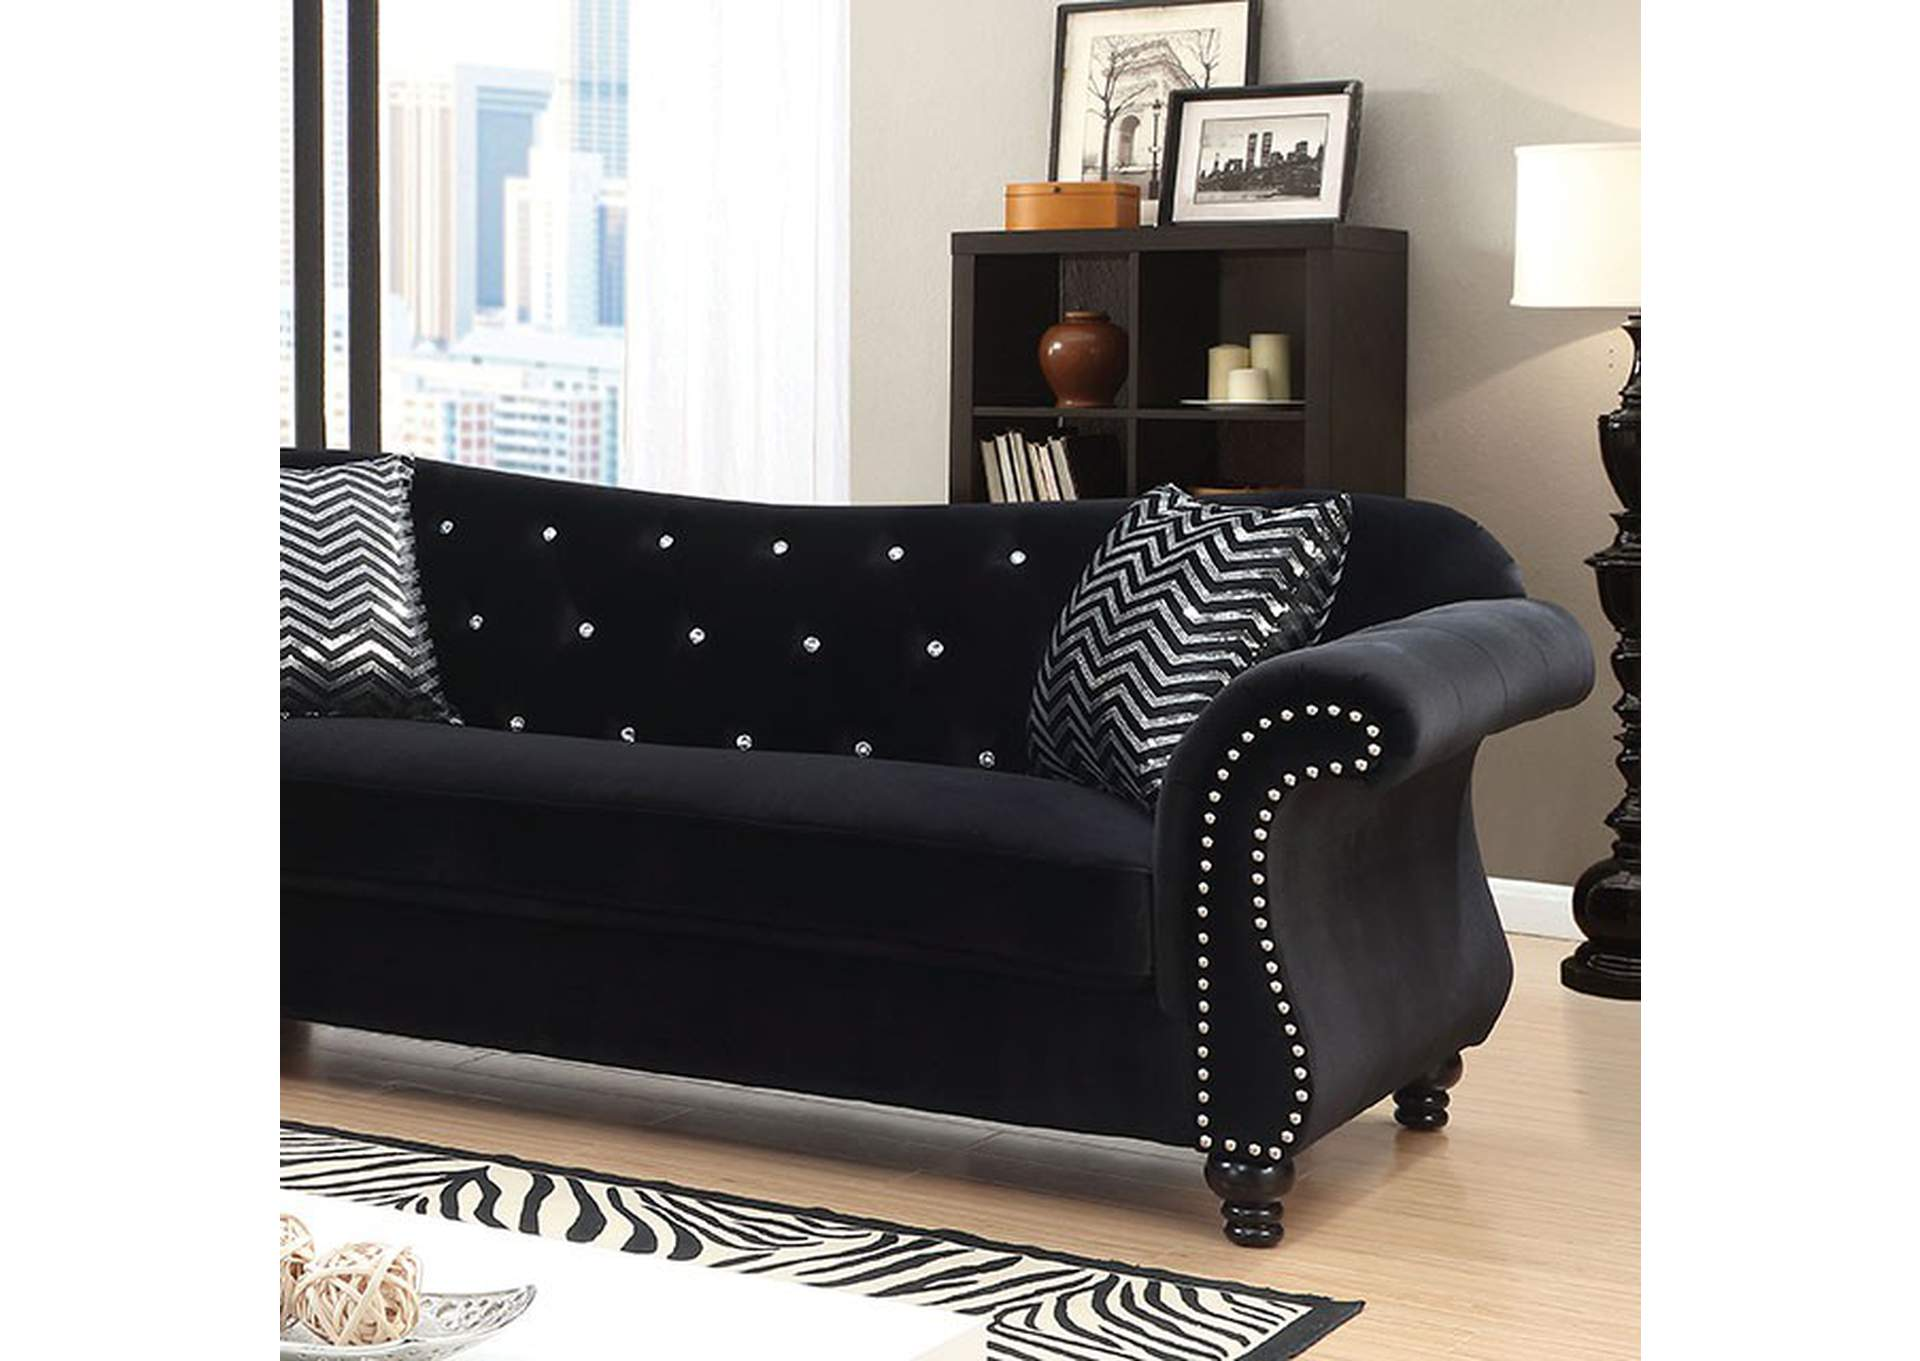 Jolanda I Black Sofa,Furniture of America